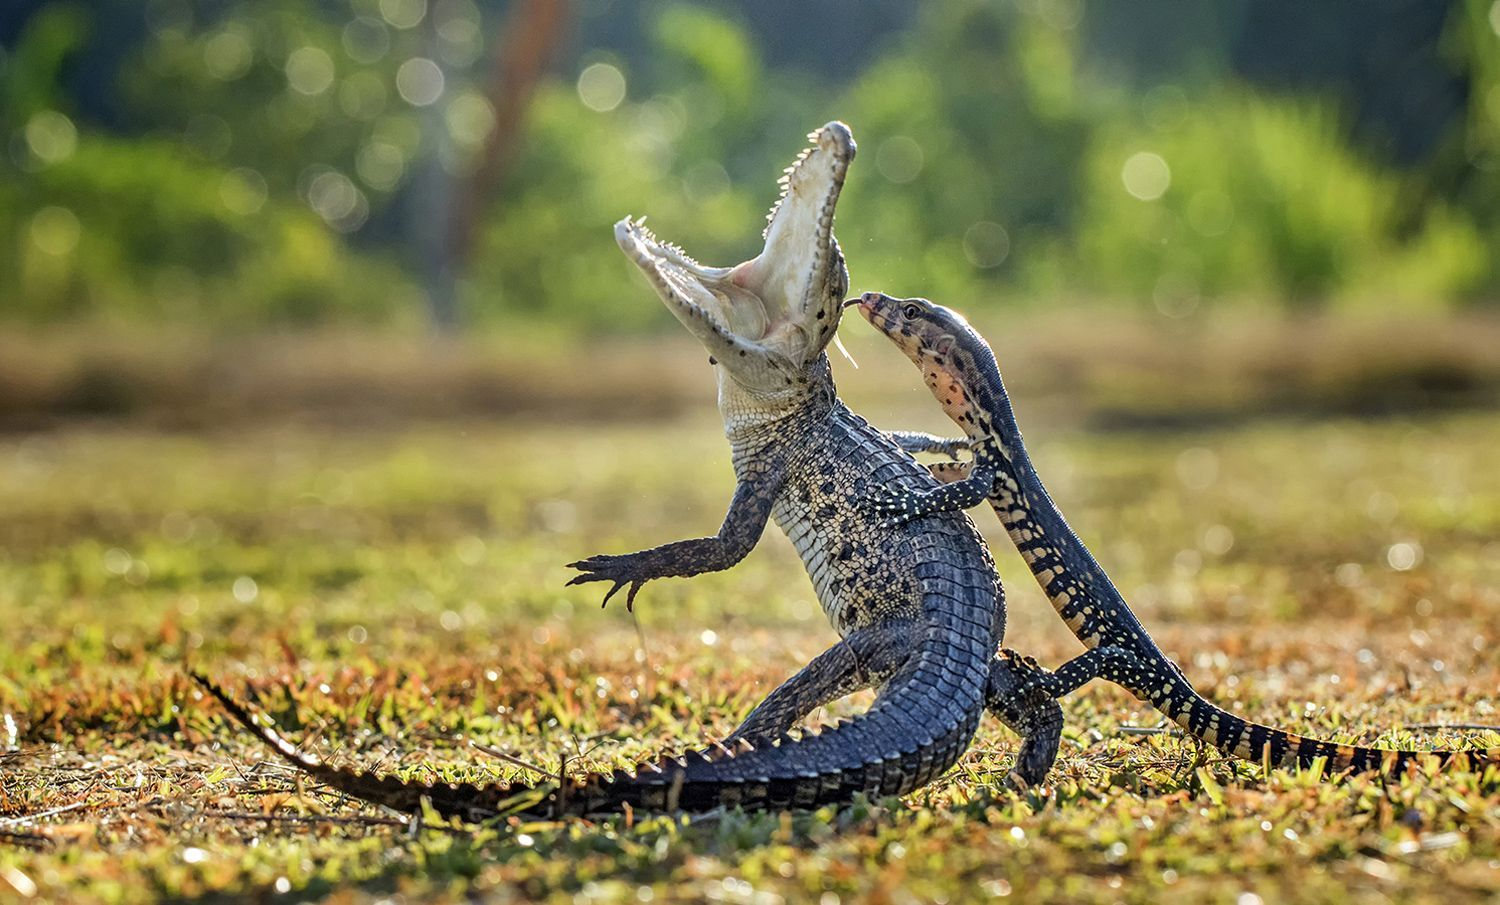 Monitor Lizard Backgrounds on Wallpapers Vista